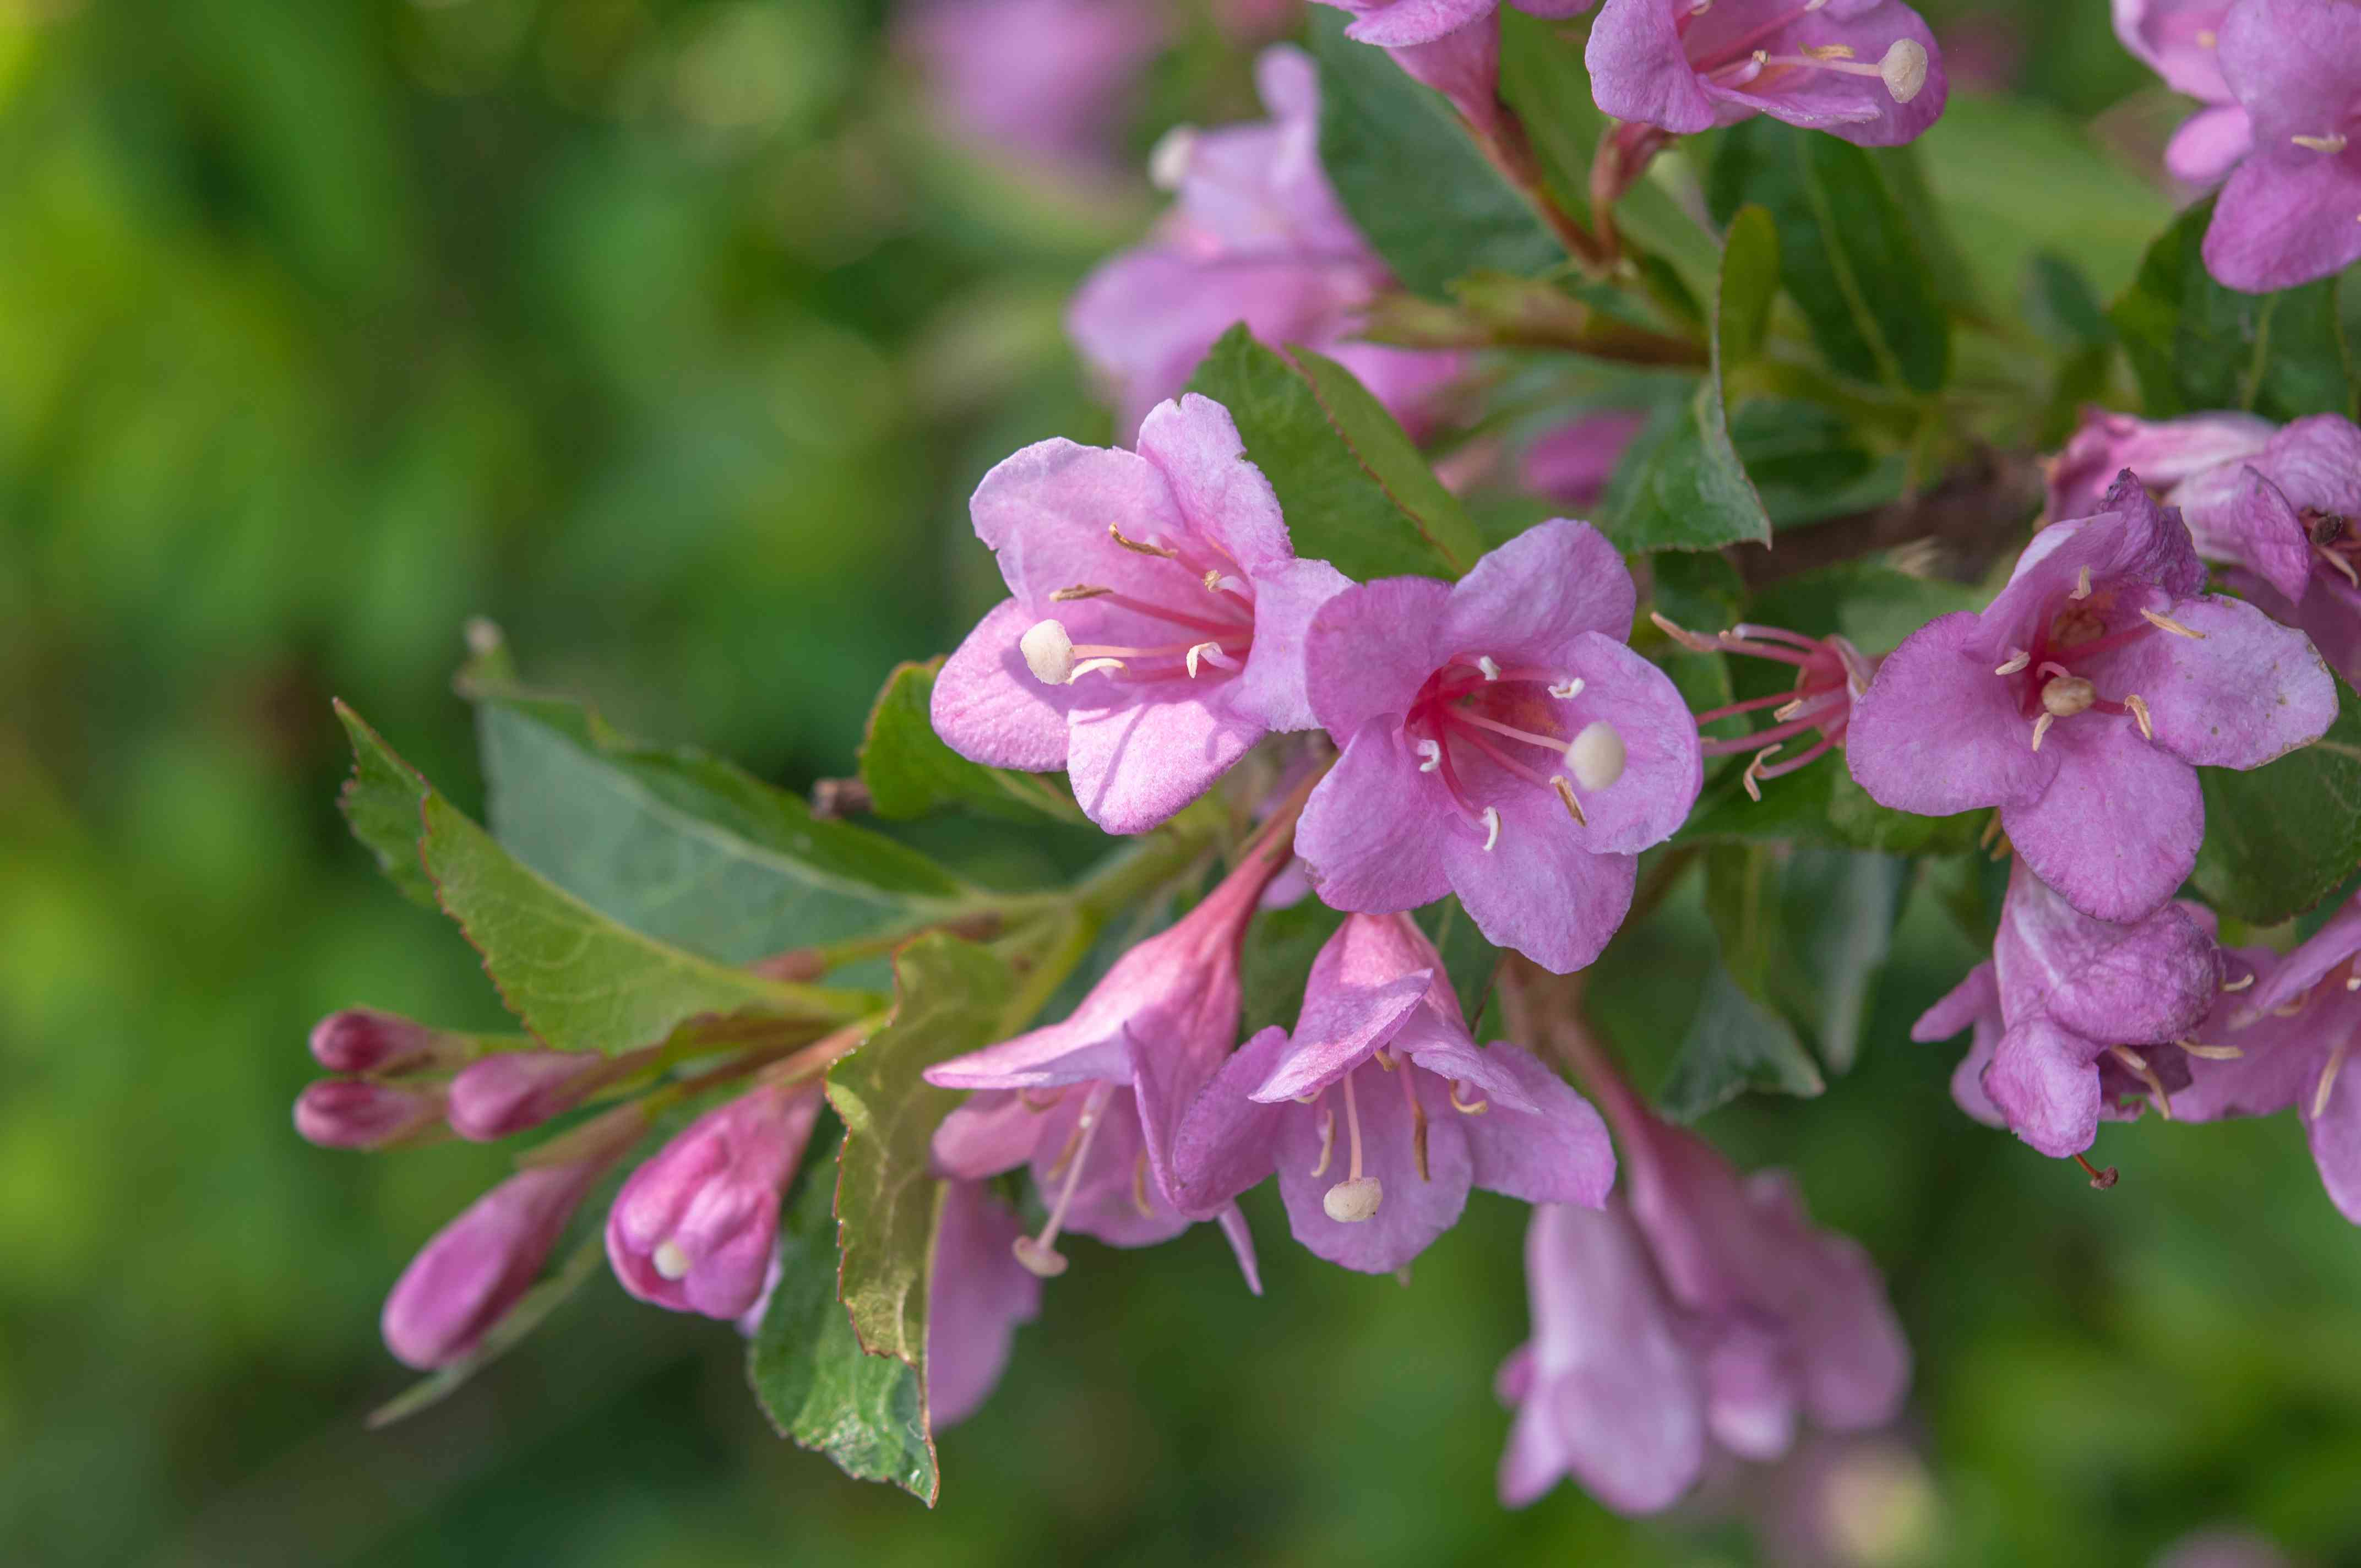 Weigela branch with small pink flowers, buds and leaves closeup